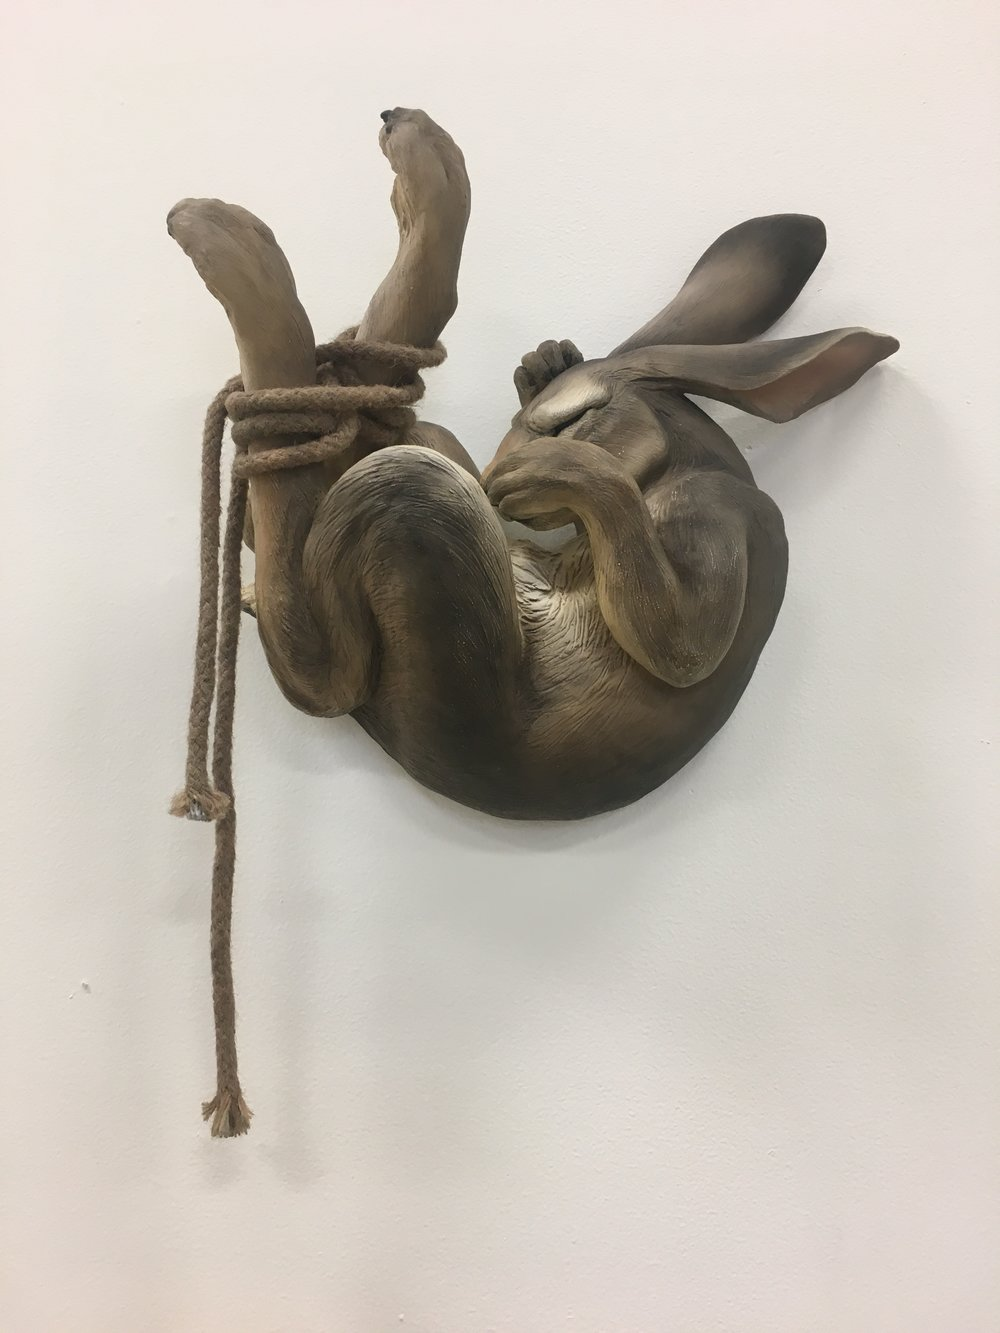 Hit The Ground Running,  Megan Doebrich. Ceramics, rope and acrylic paint. Image courtesy of Lauren Darpel.